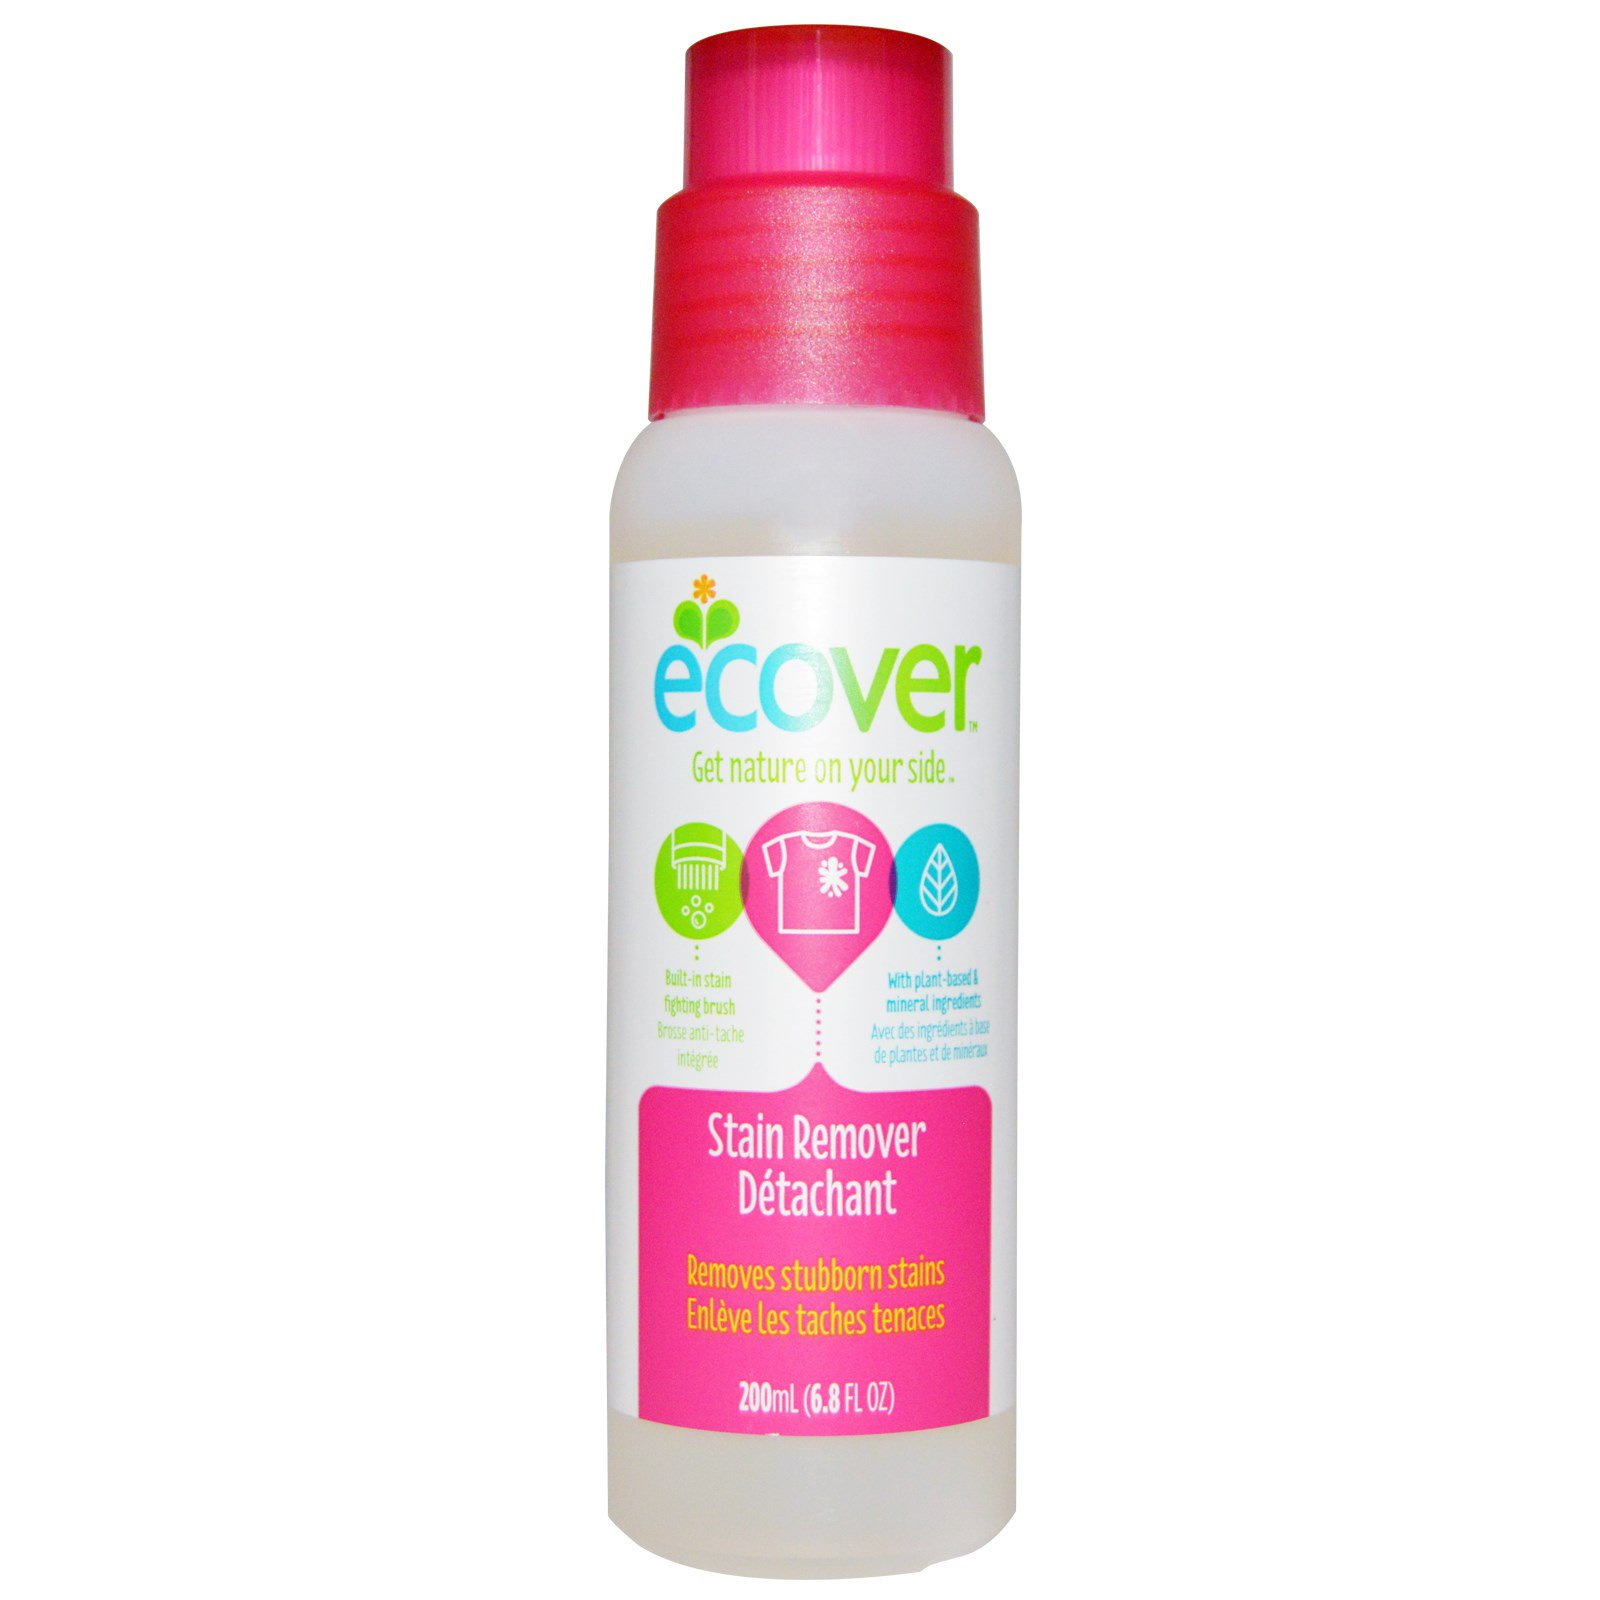 Ecover Stain Remover 6 8 fl oz 200 ml iHerb